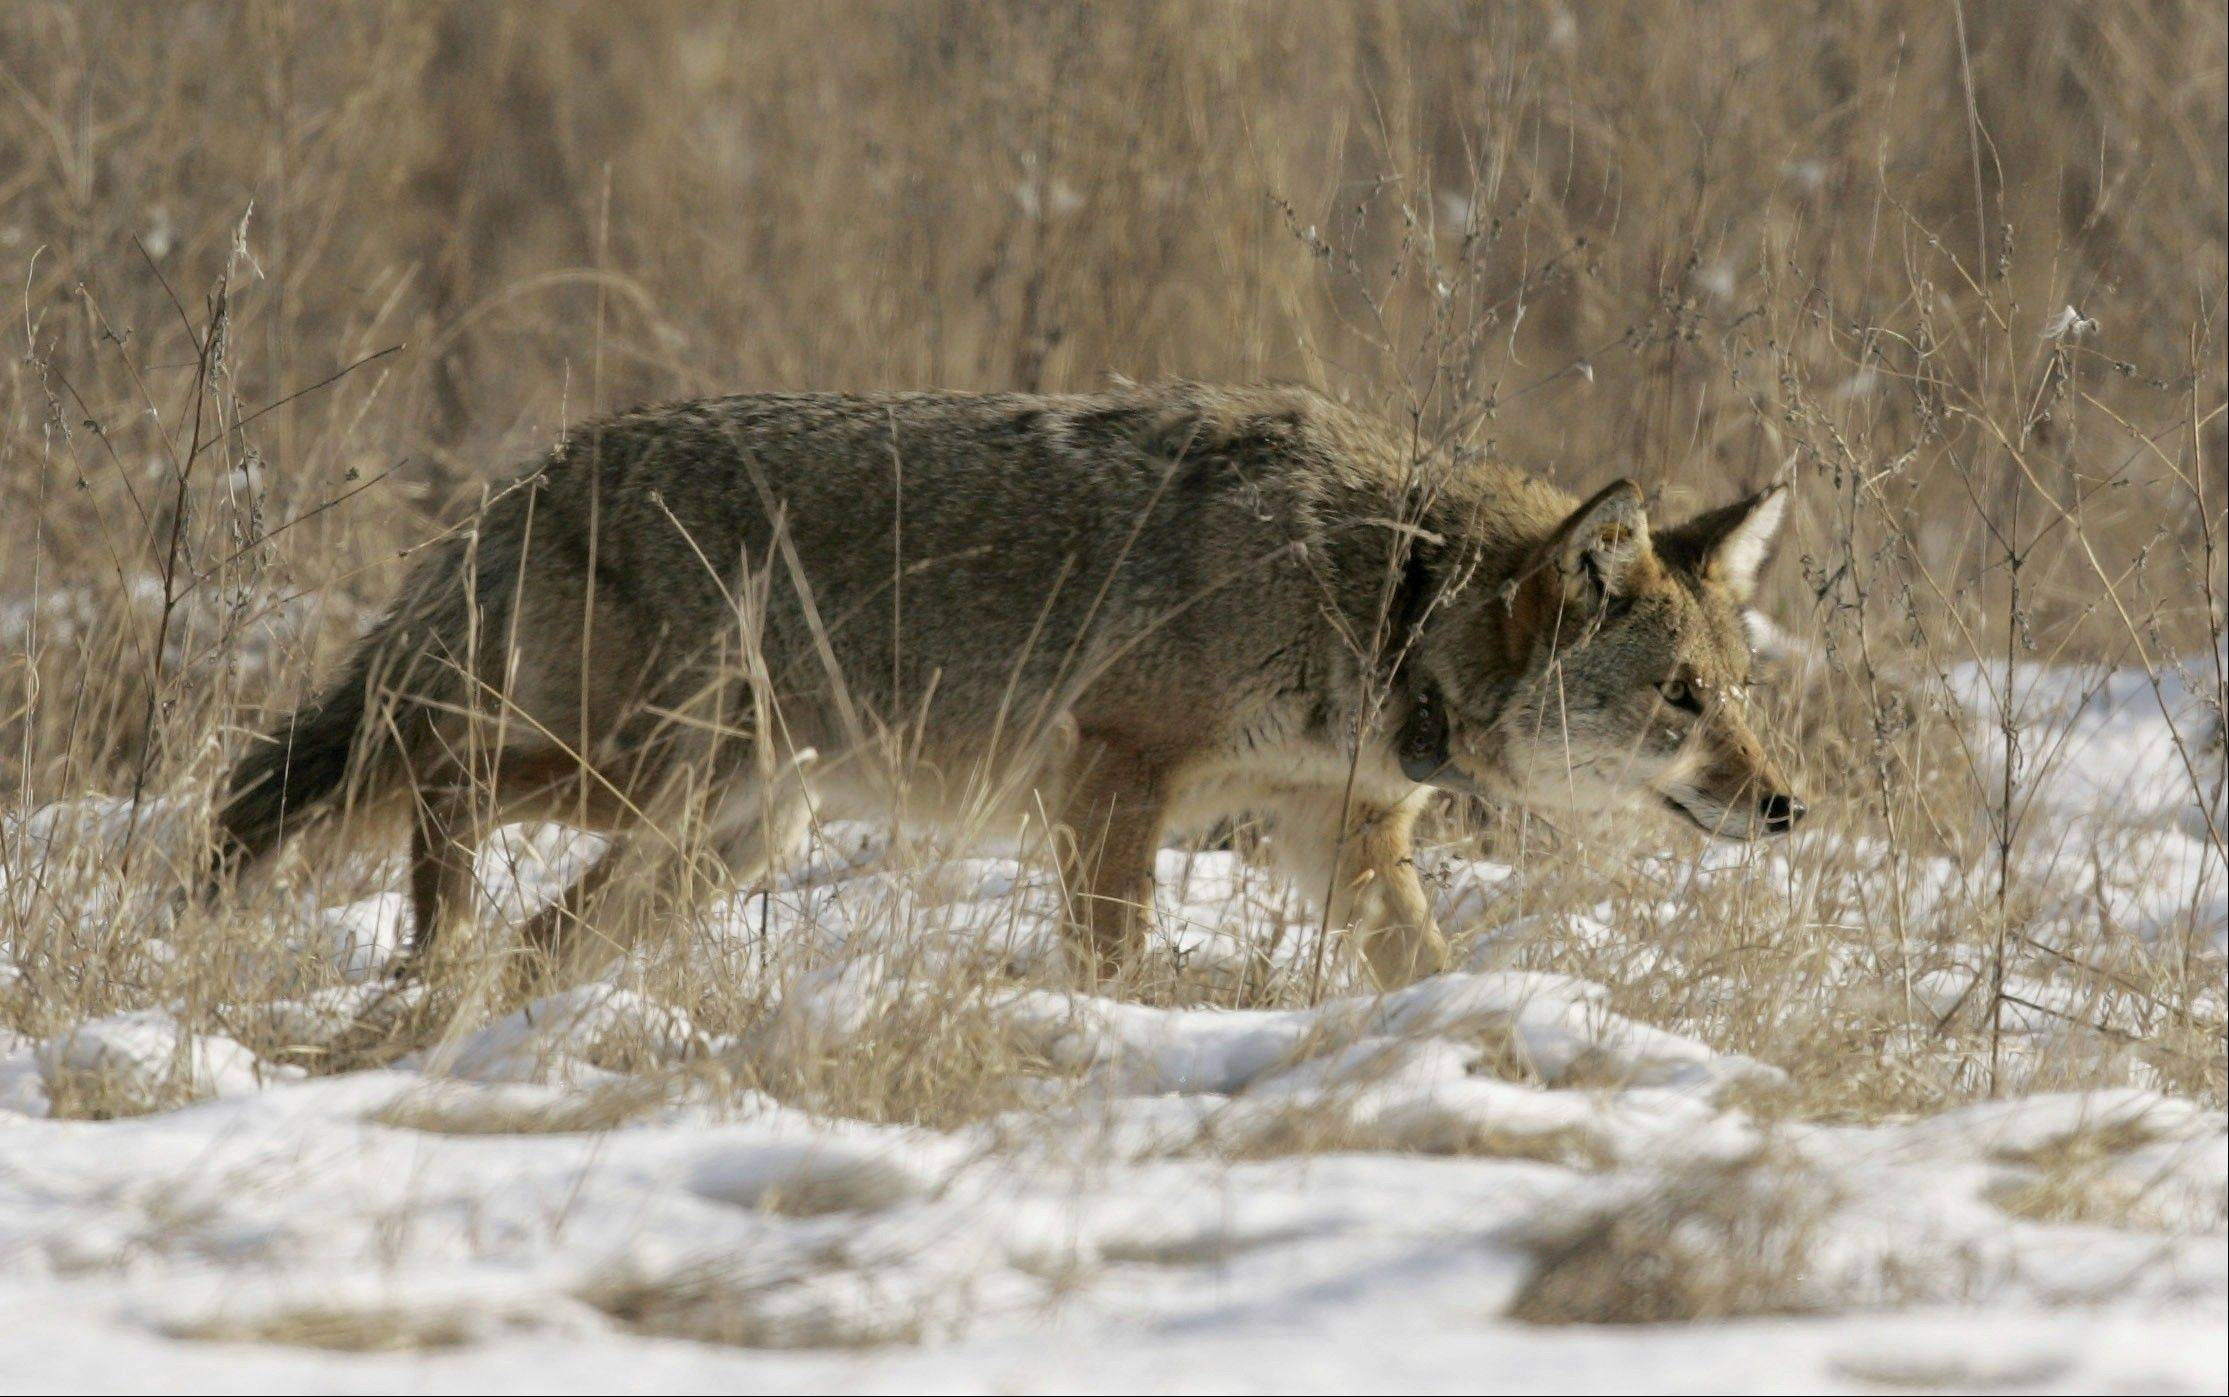 Coyotes kill three dogs in Wheaton